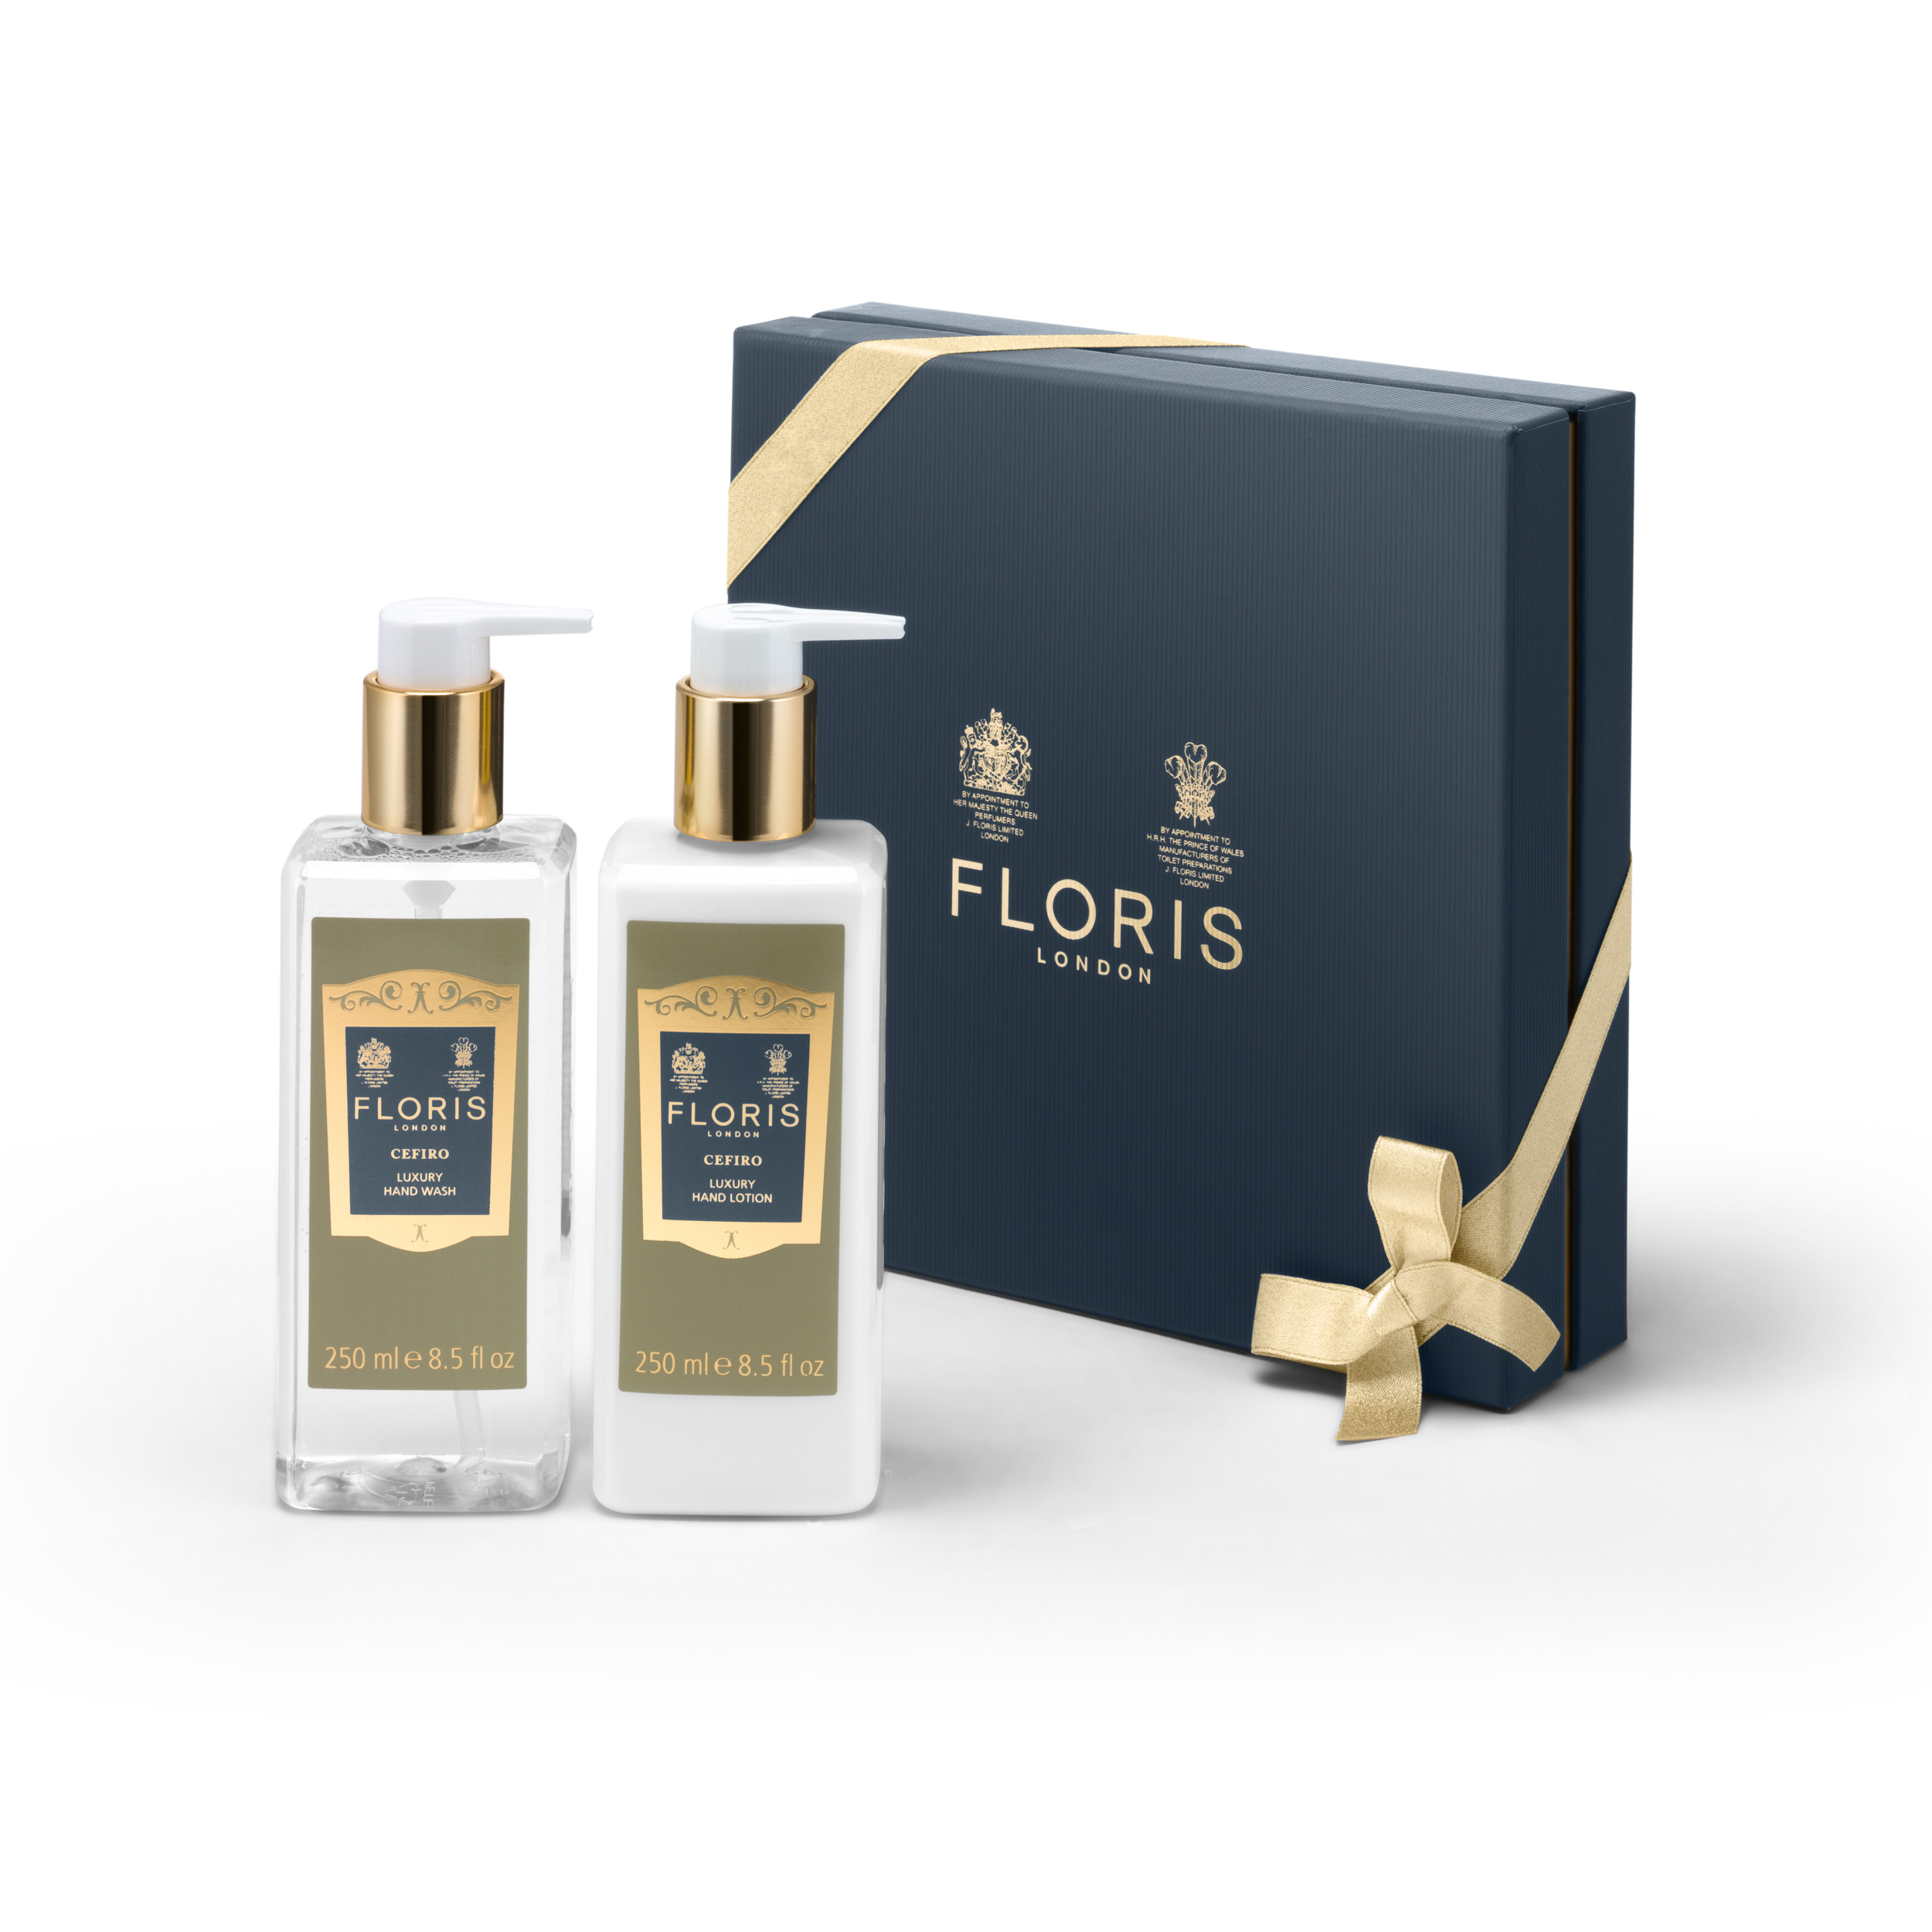 An image of Floris Cefiro Luxury Hand Wash and Lotion Duo